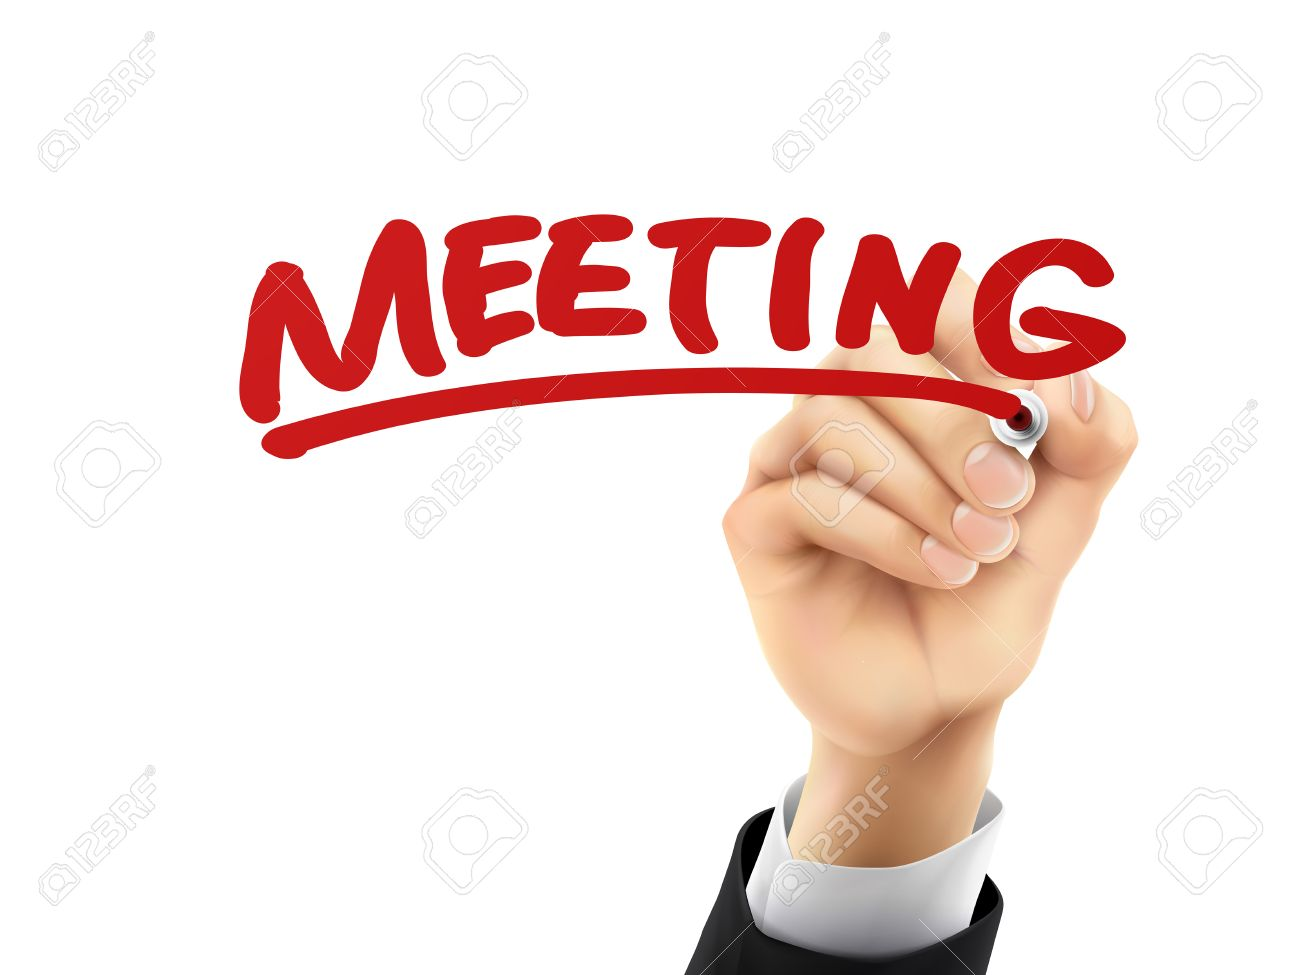 hight resolution of meeting word written by hand on a transparent board stock vector 37137239